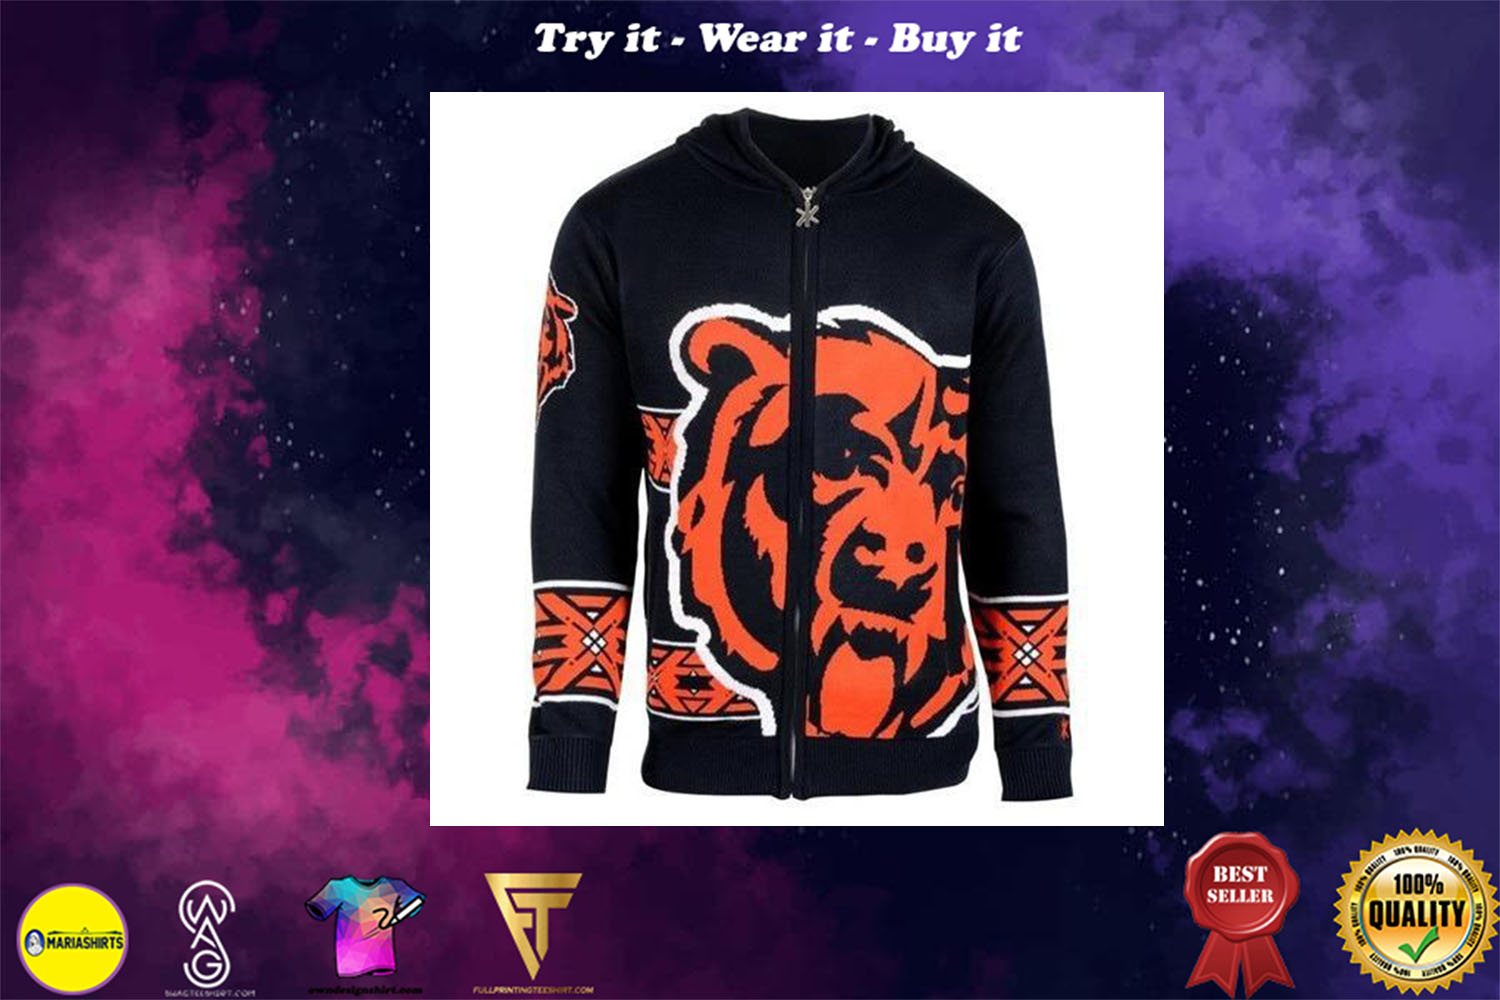 [special edition] chicago bears nfl full over print shirt - maria